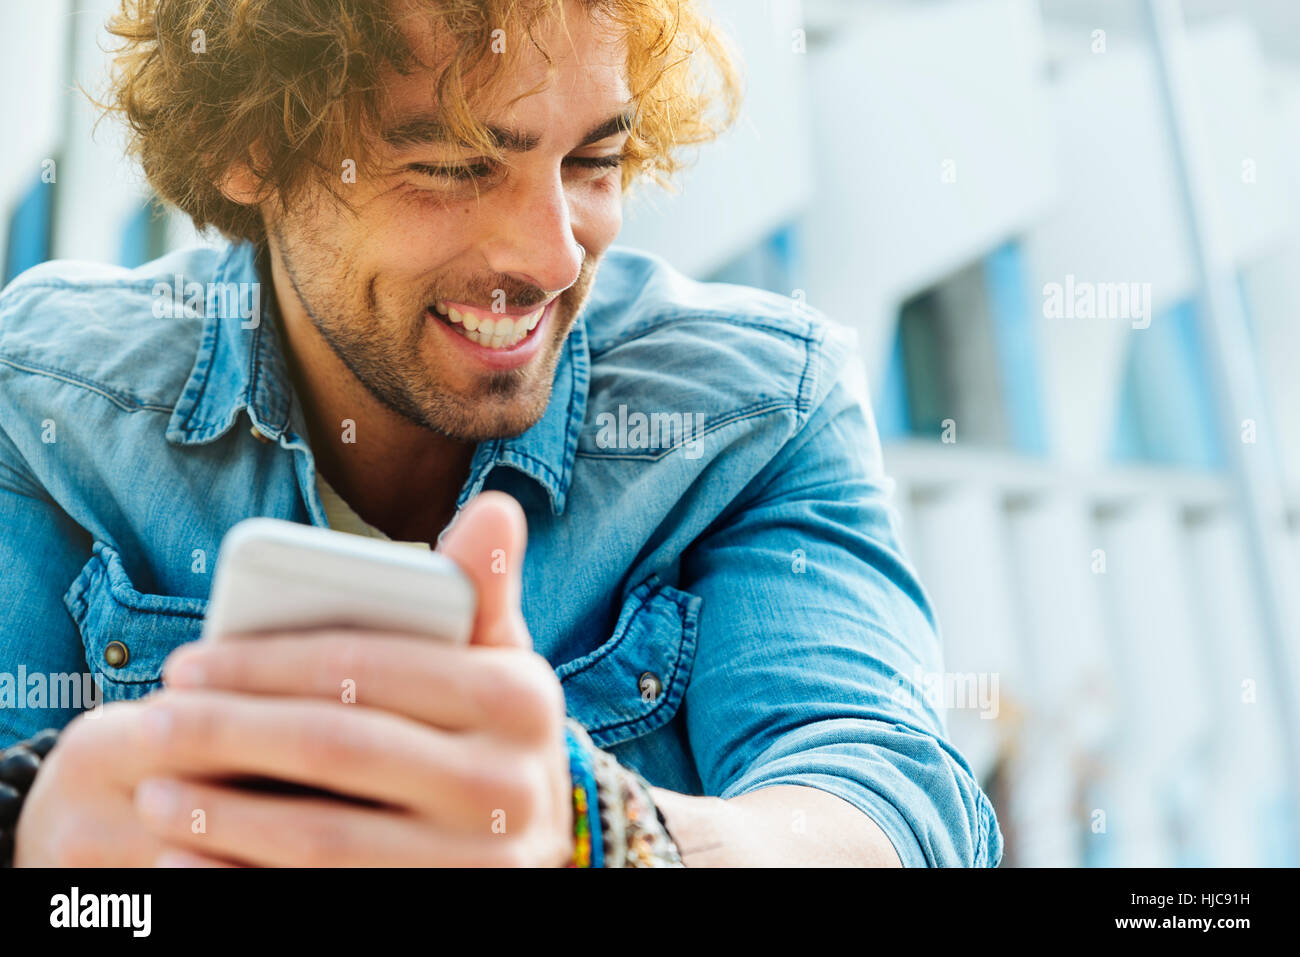 Portrait of Handsome young man smiling when he is using his mobile in the street. - Stock Image